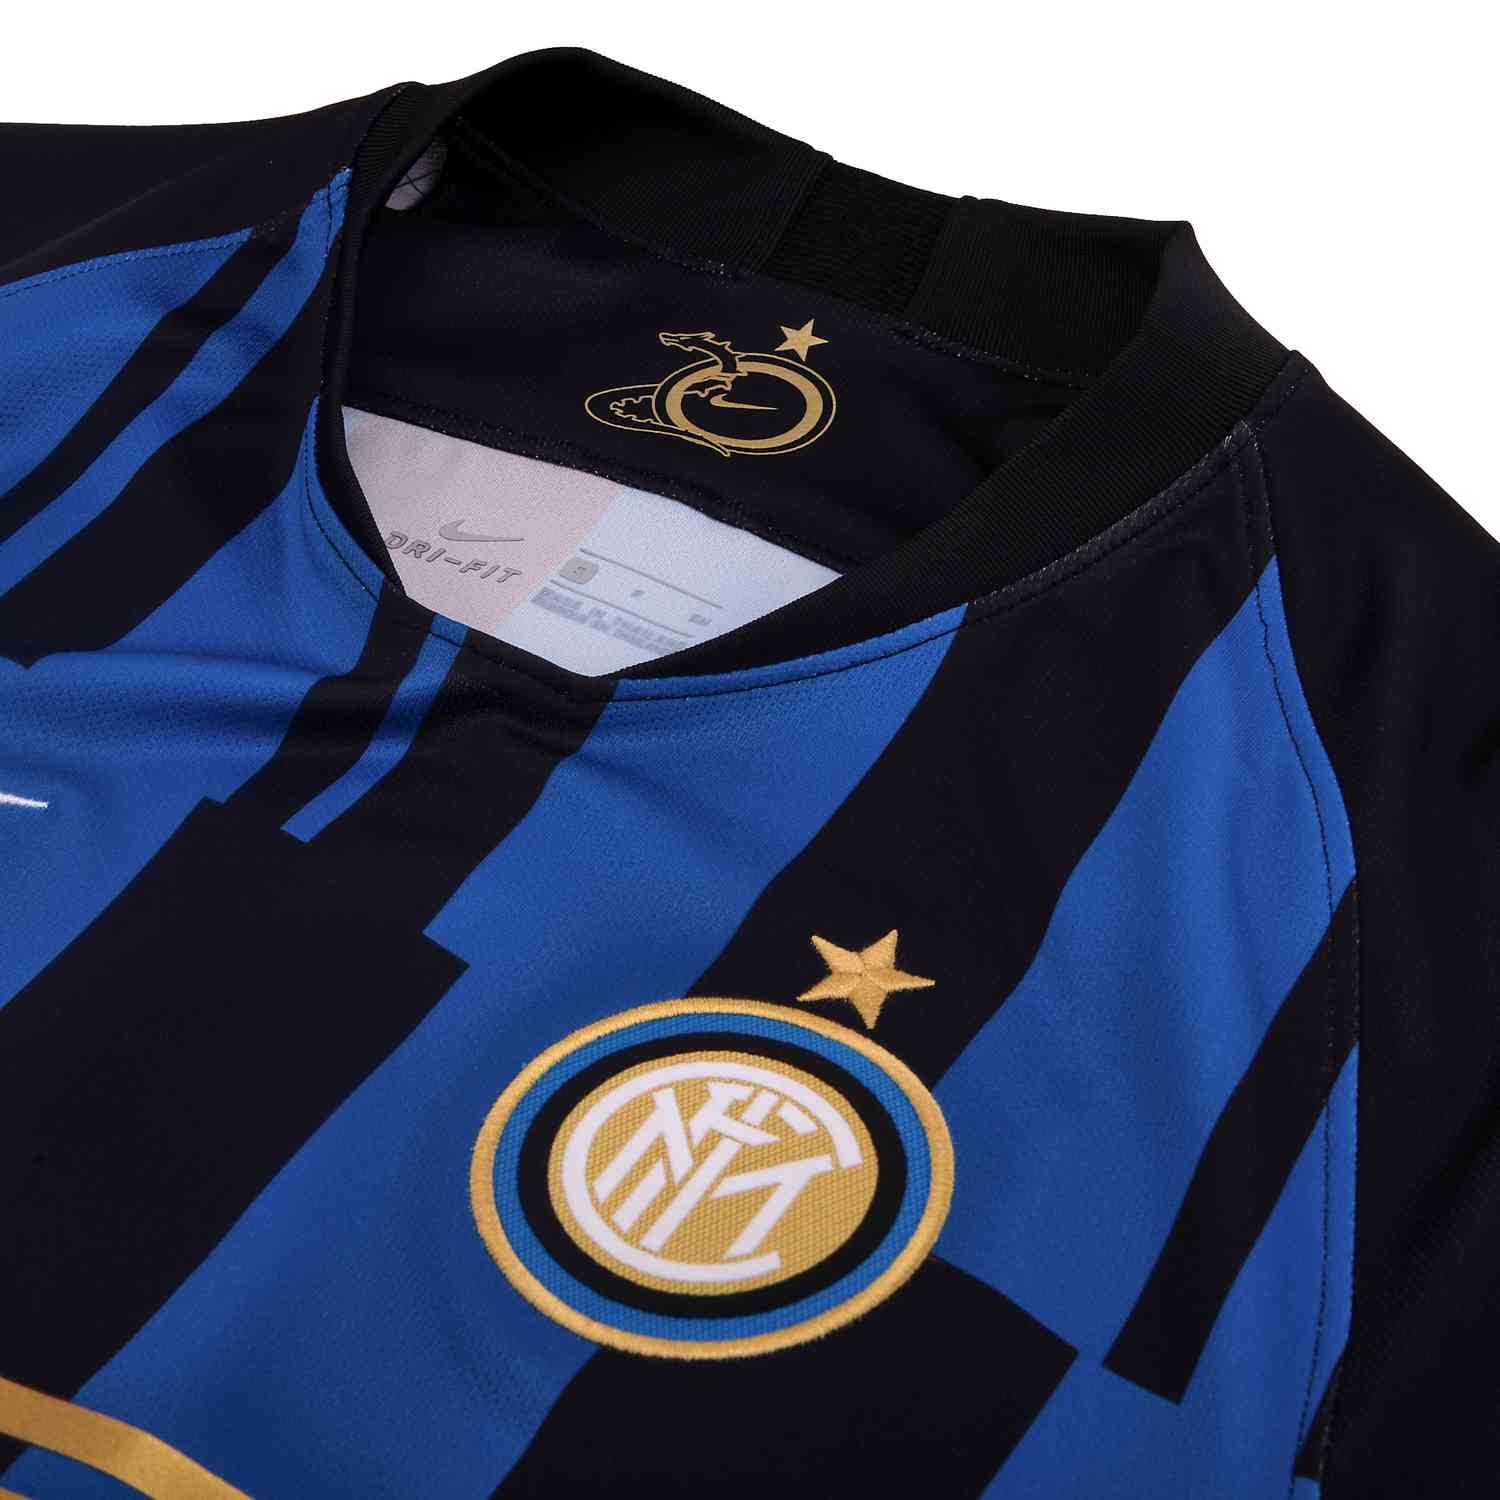 6085068a5df What the Inter Milan Home Jersey - 2018 19 - Soccer Master